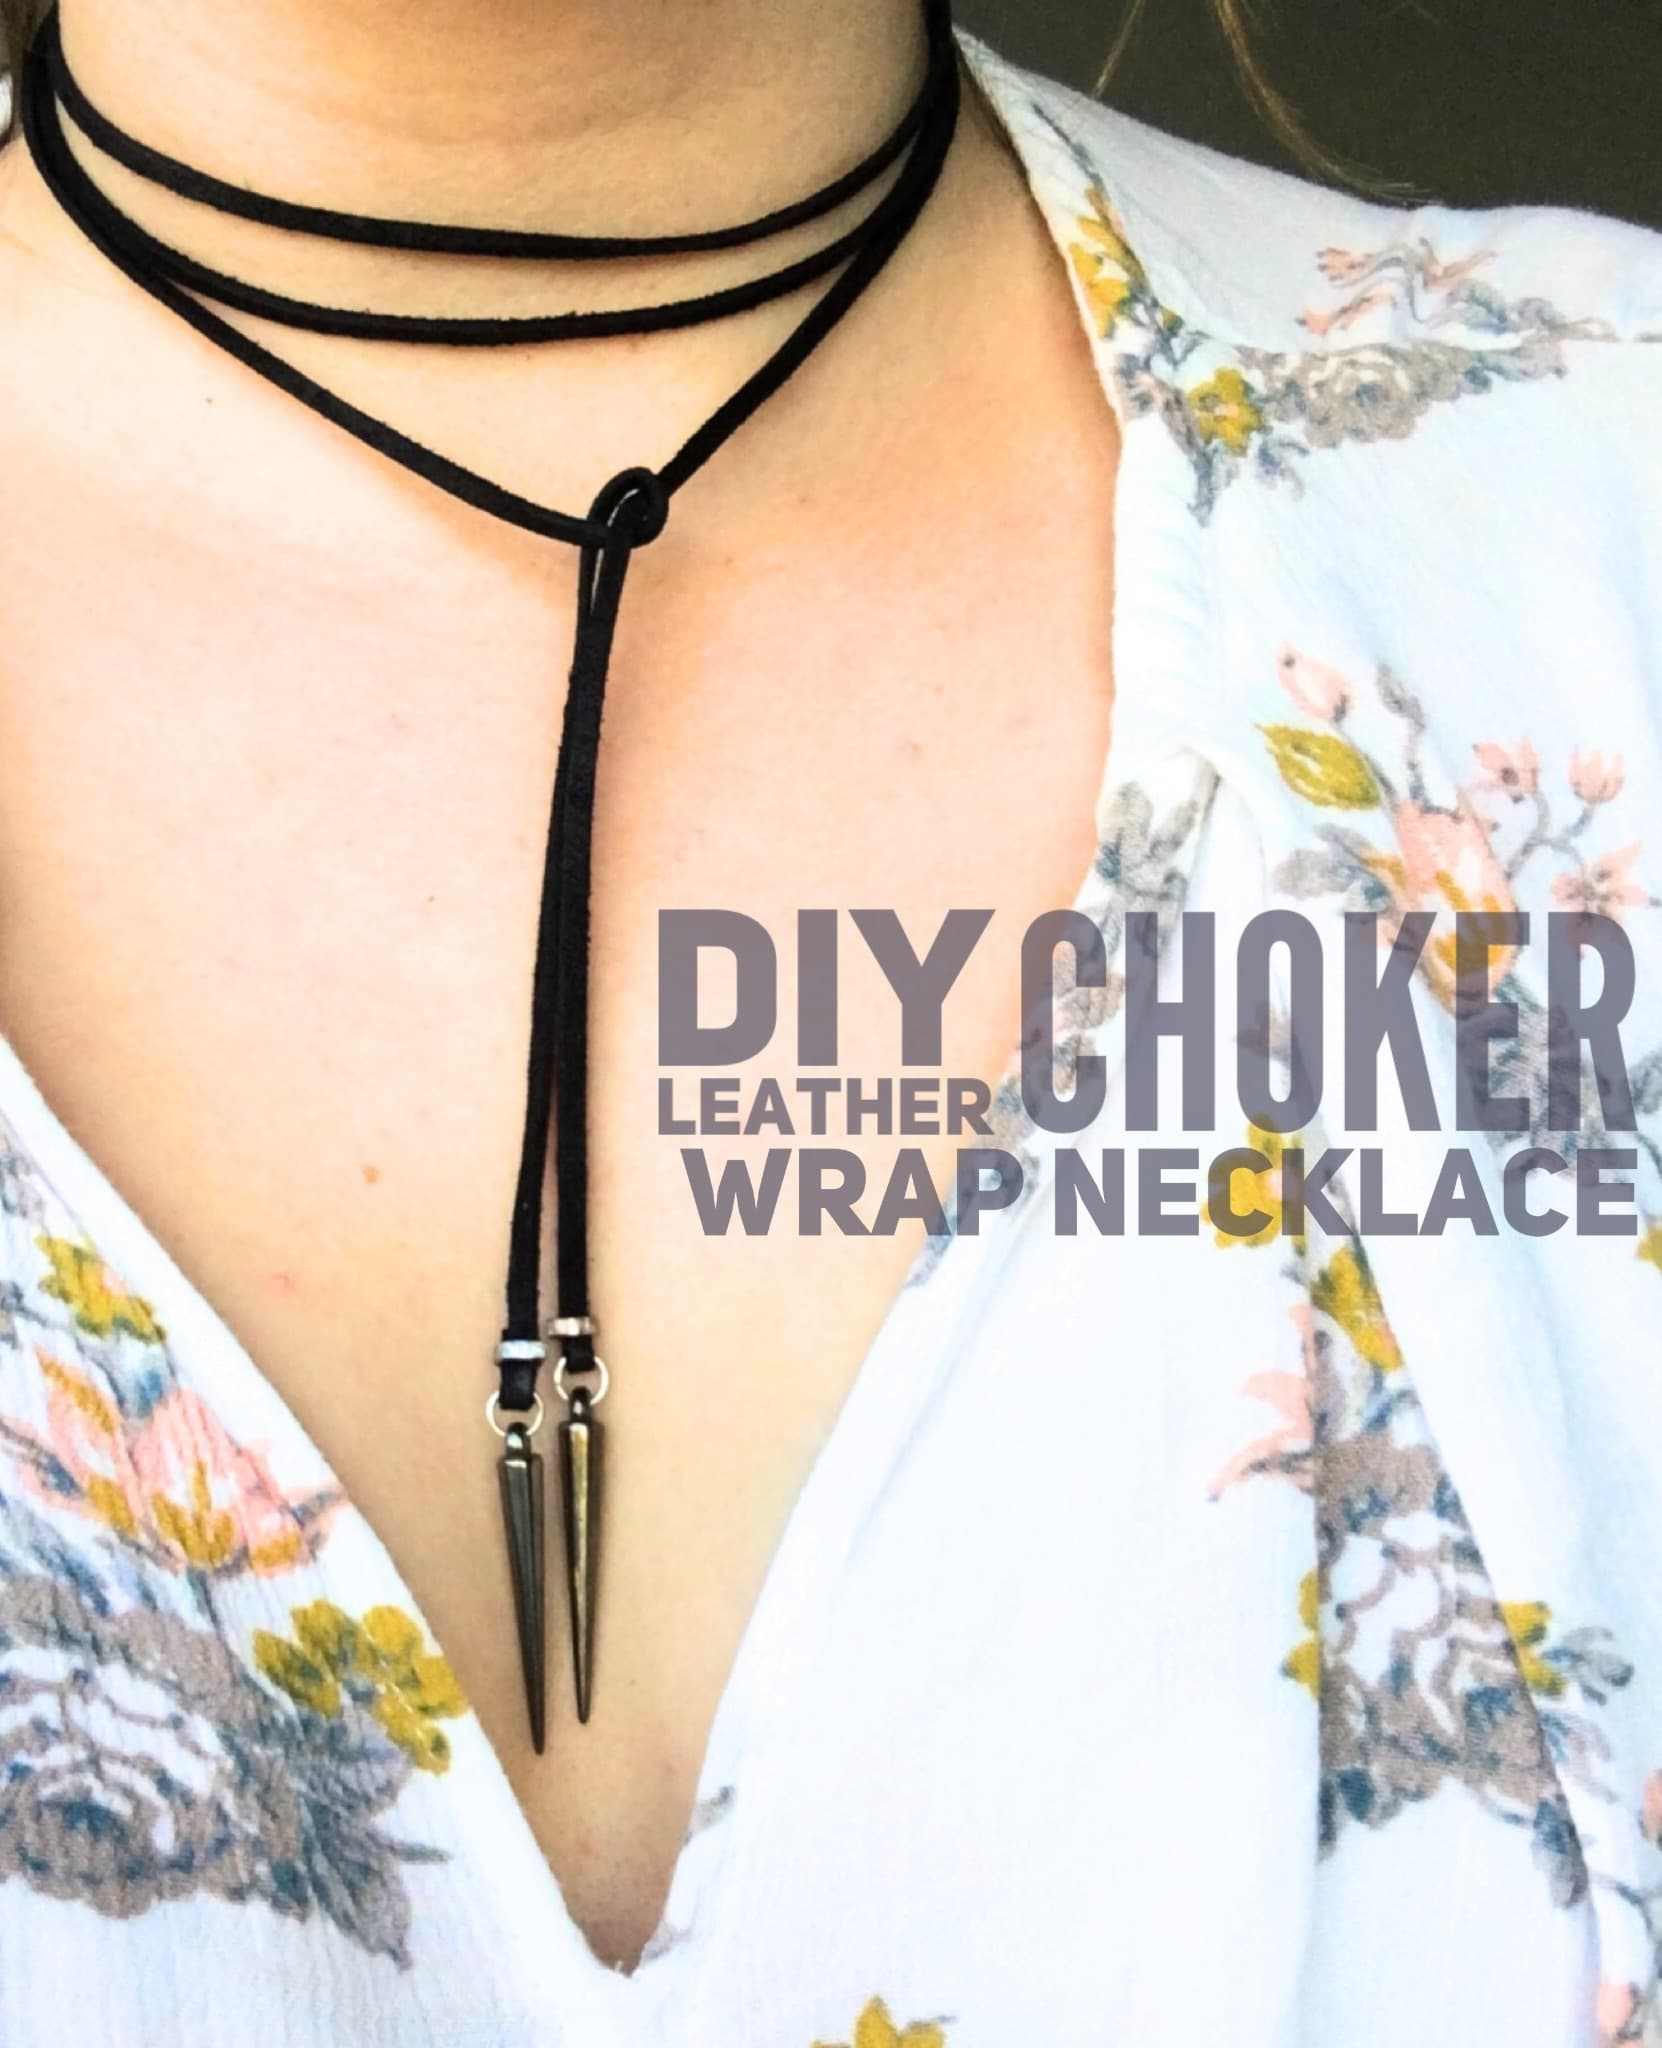 DIY Leather Choker Wrap Necklace